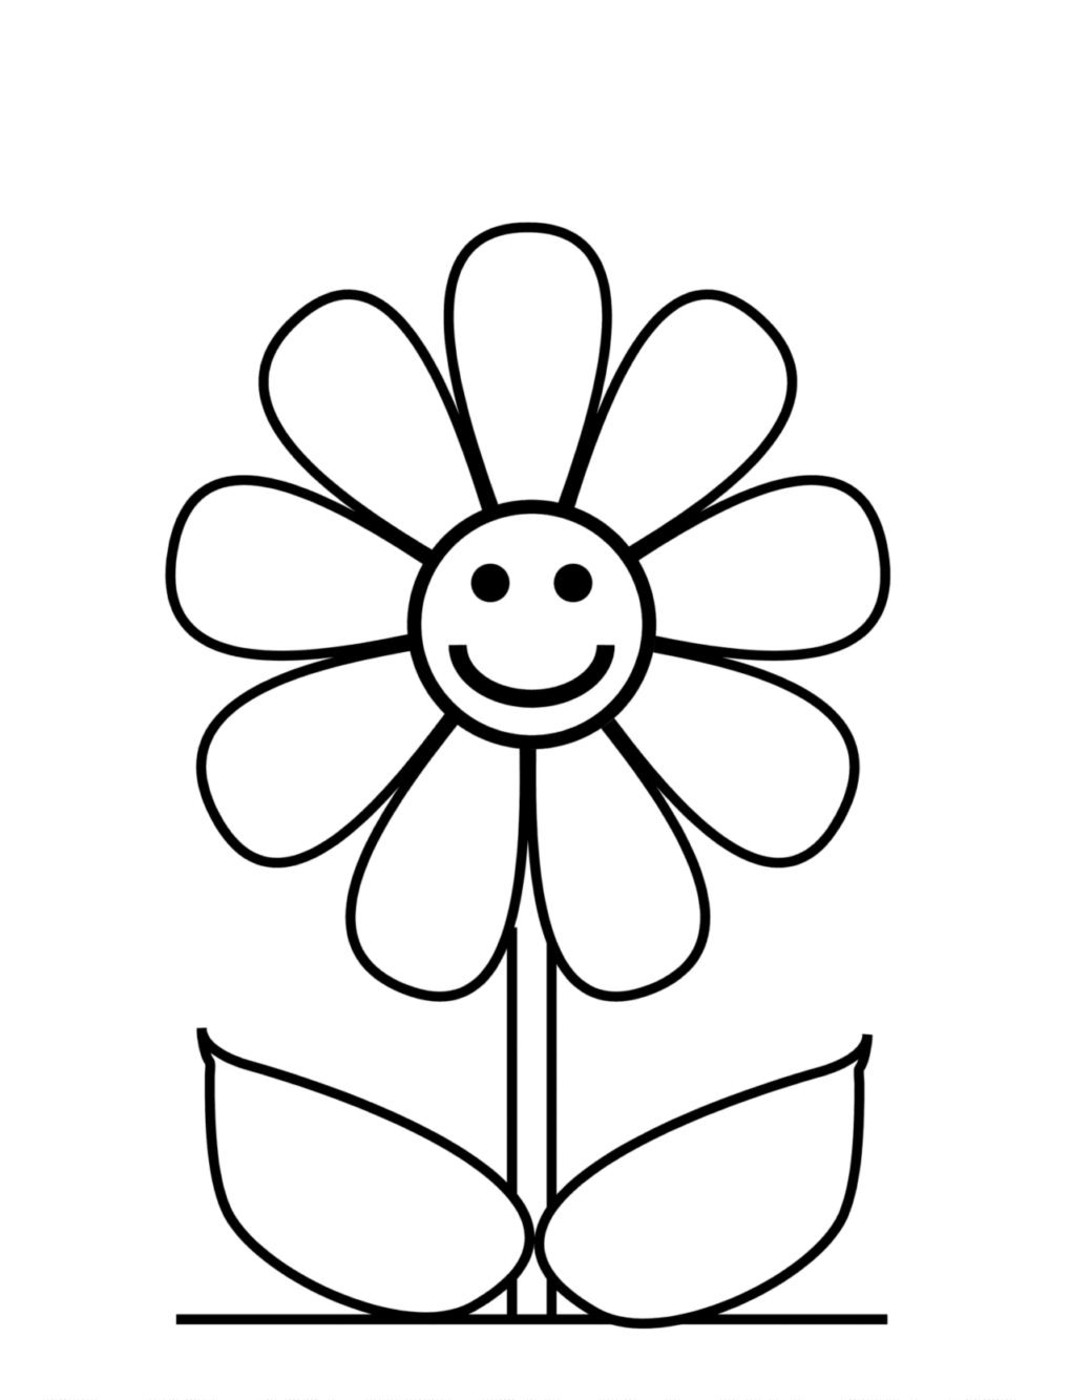 free printable flower coloring pages free flower coloring pages for kids printable pdf print flower coloring free printable pages